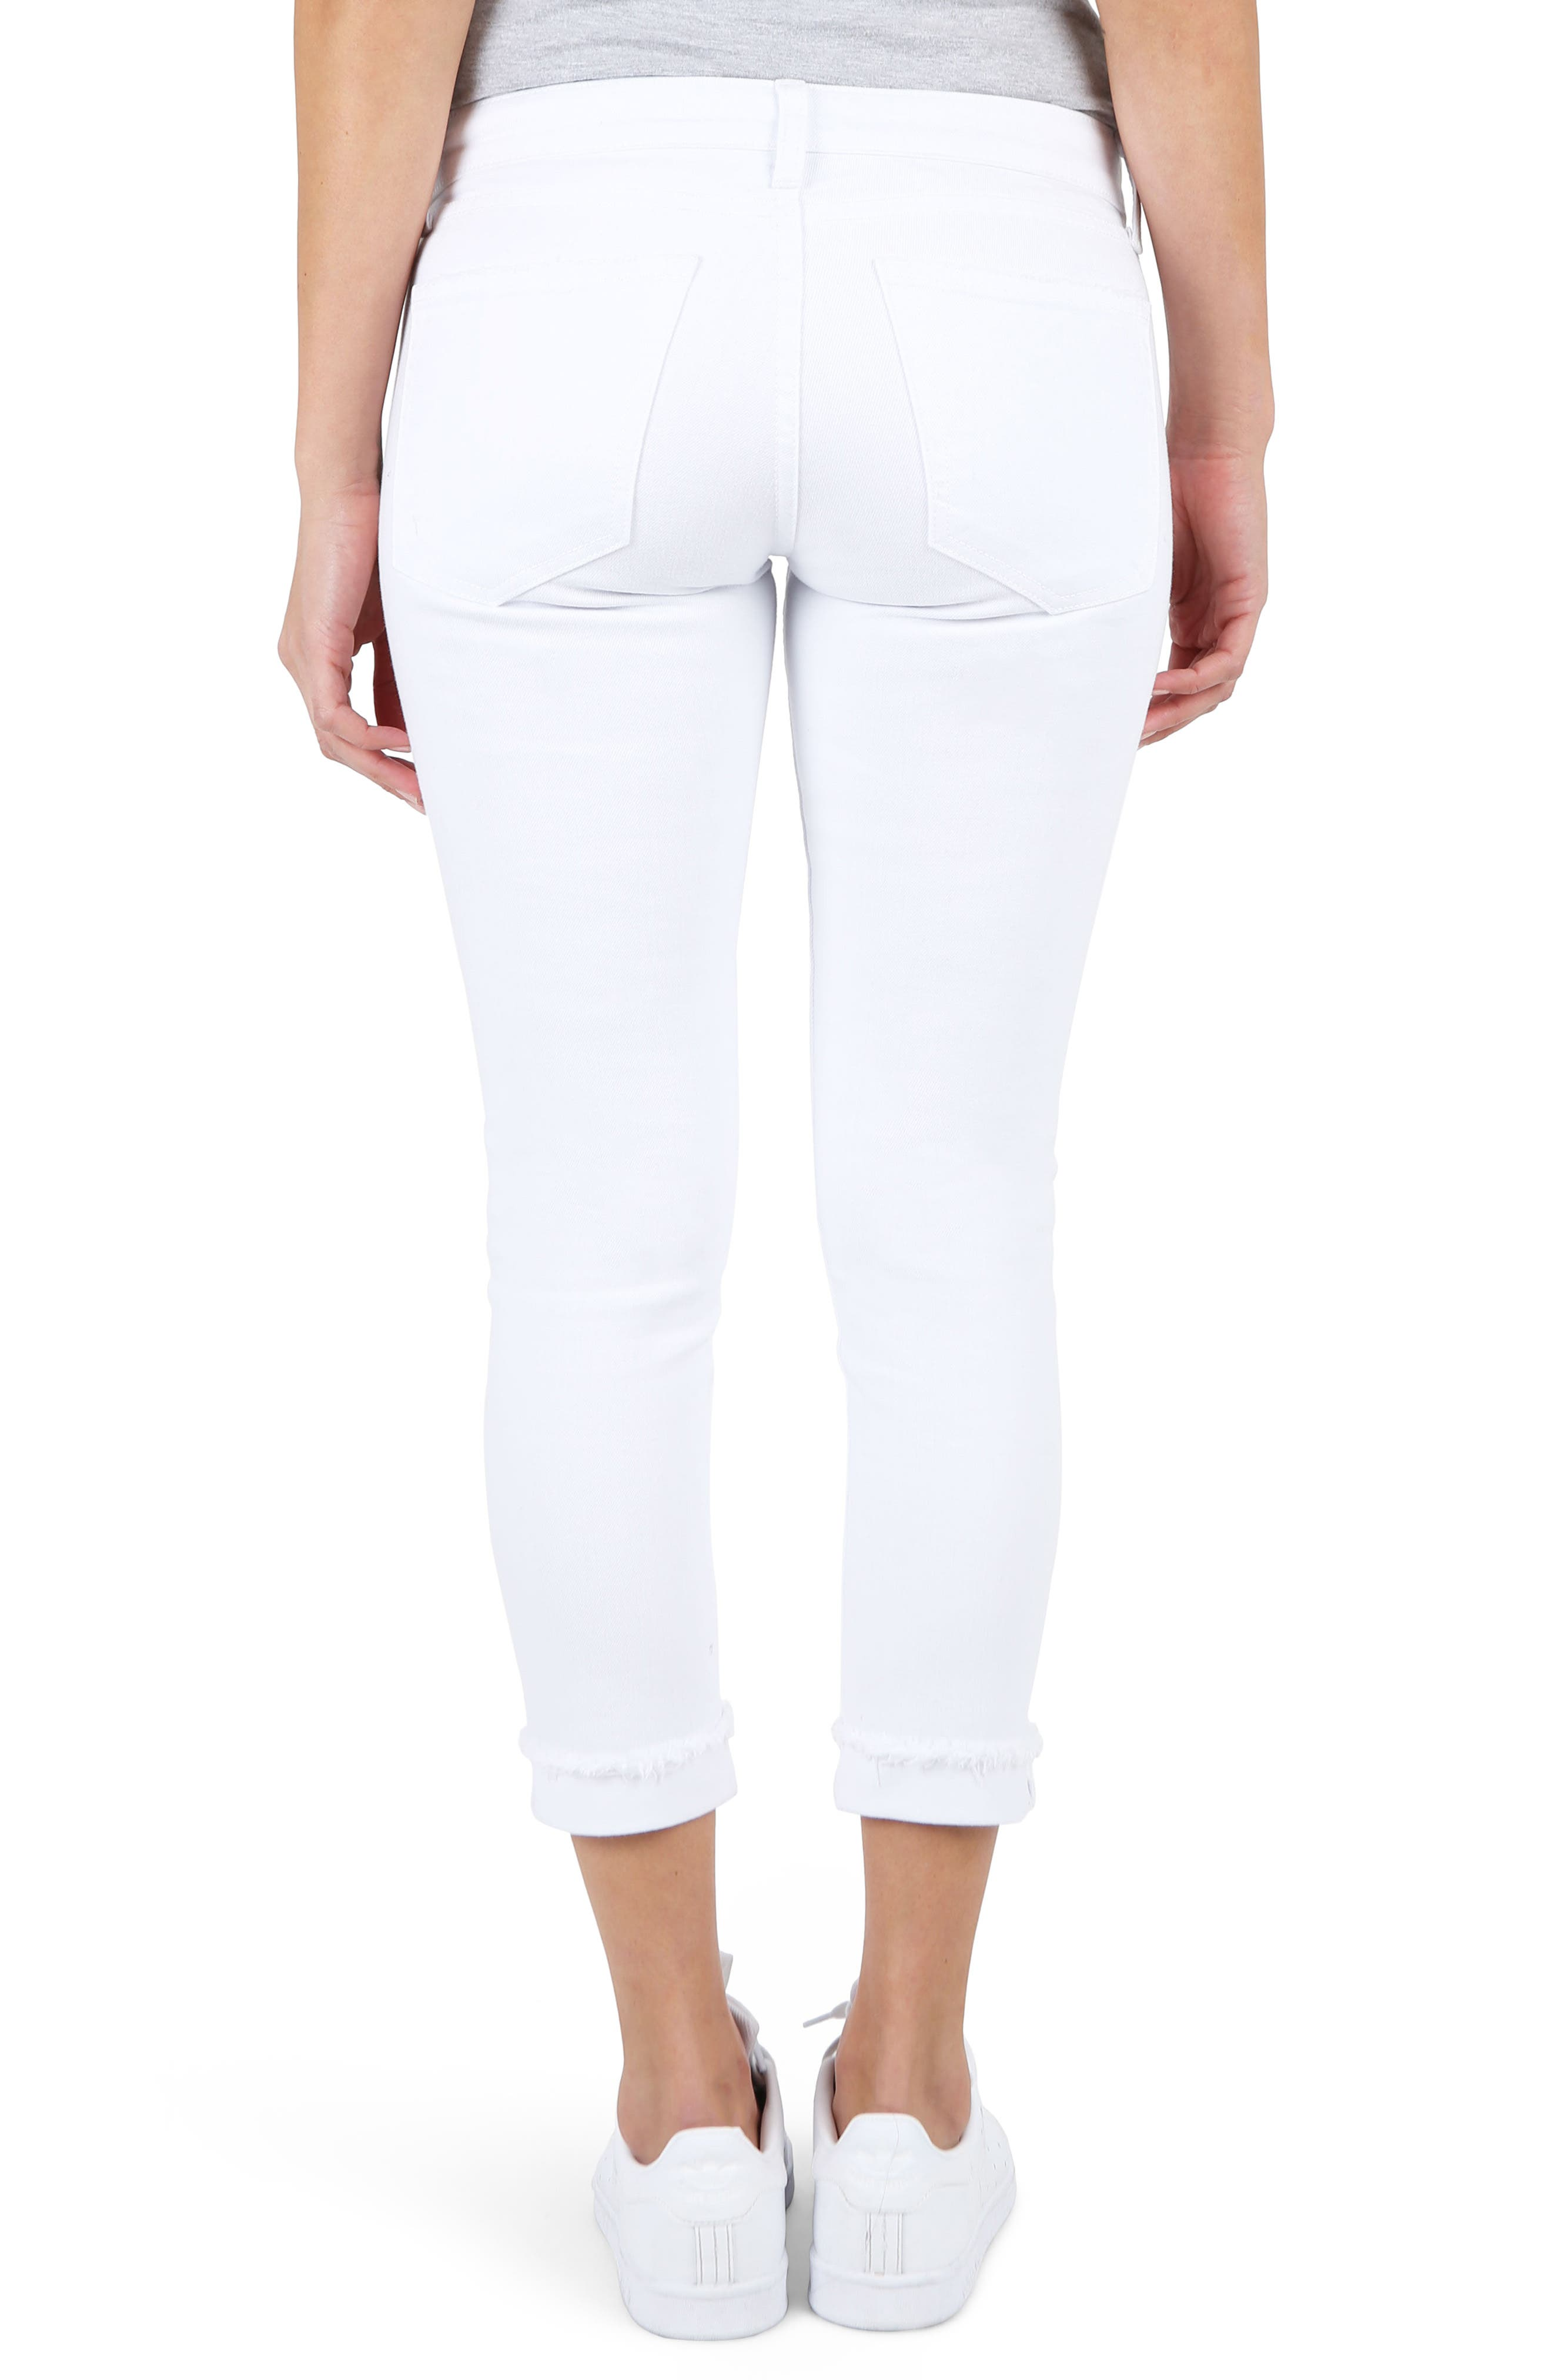 KUT Kollection Amy Crop White Jeans,                             Alternate thumbnail 2, color,                             Optical White